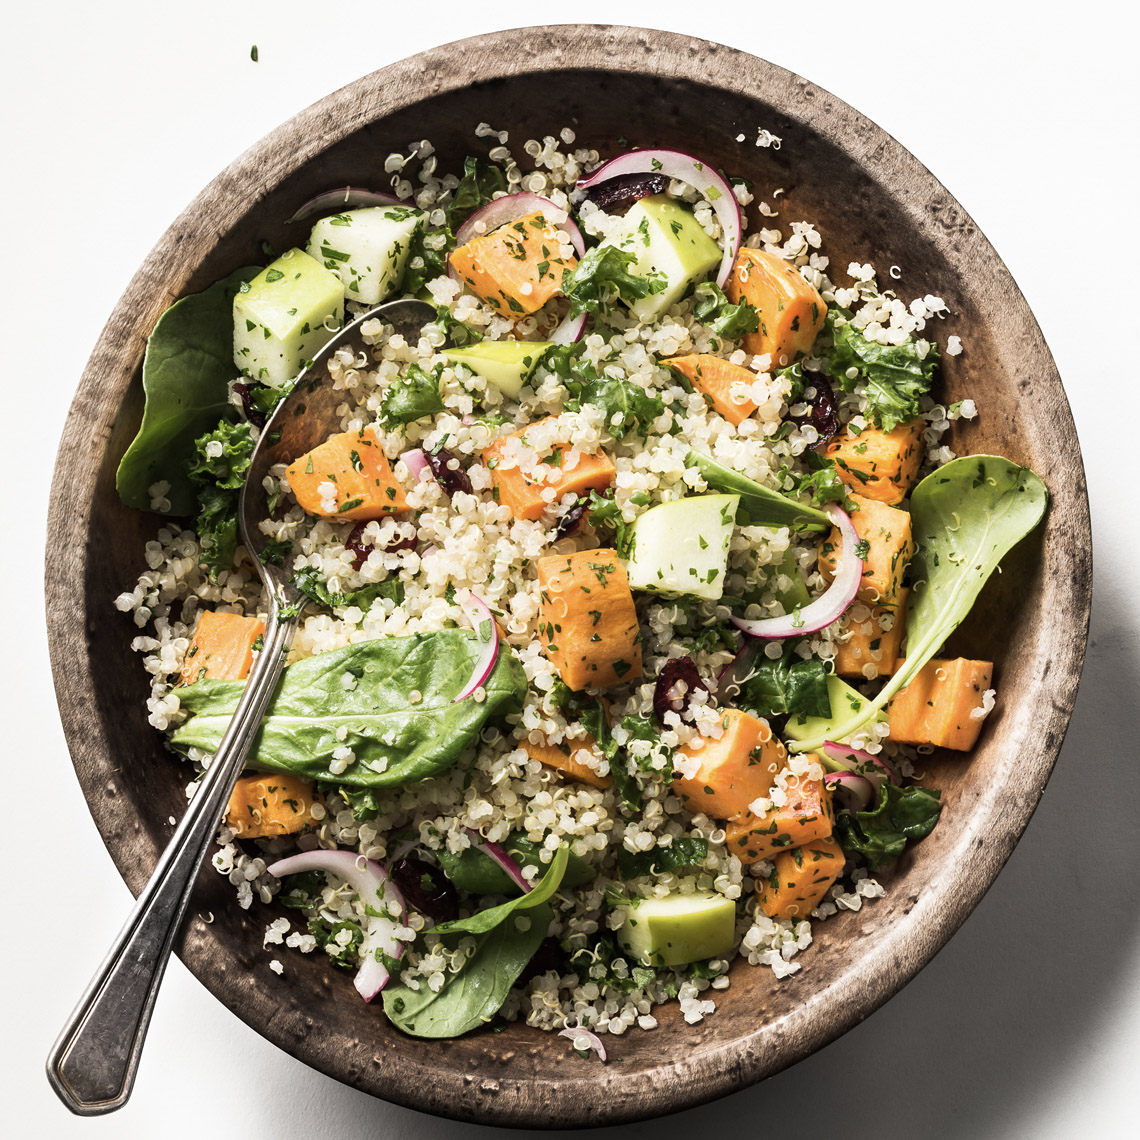 food stylist in dallas - Quinoa and sweet potato salad for Central Market banner Advertising Manny Rodriguez photography